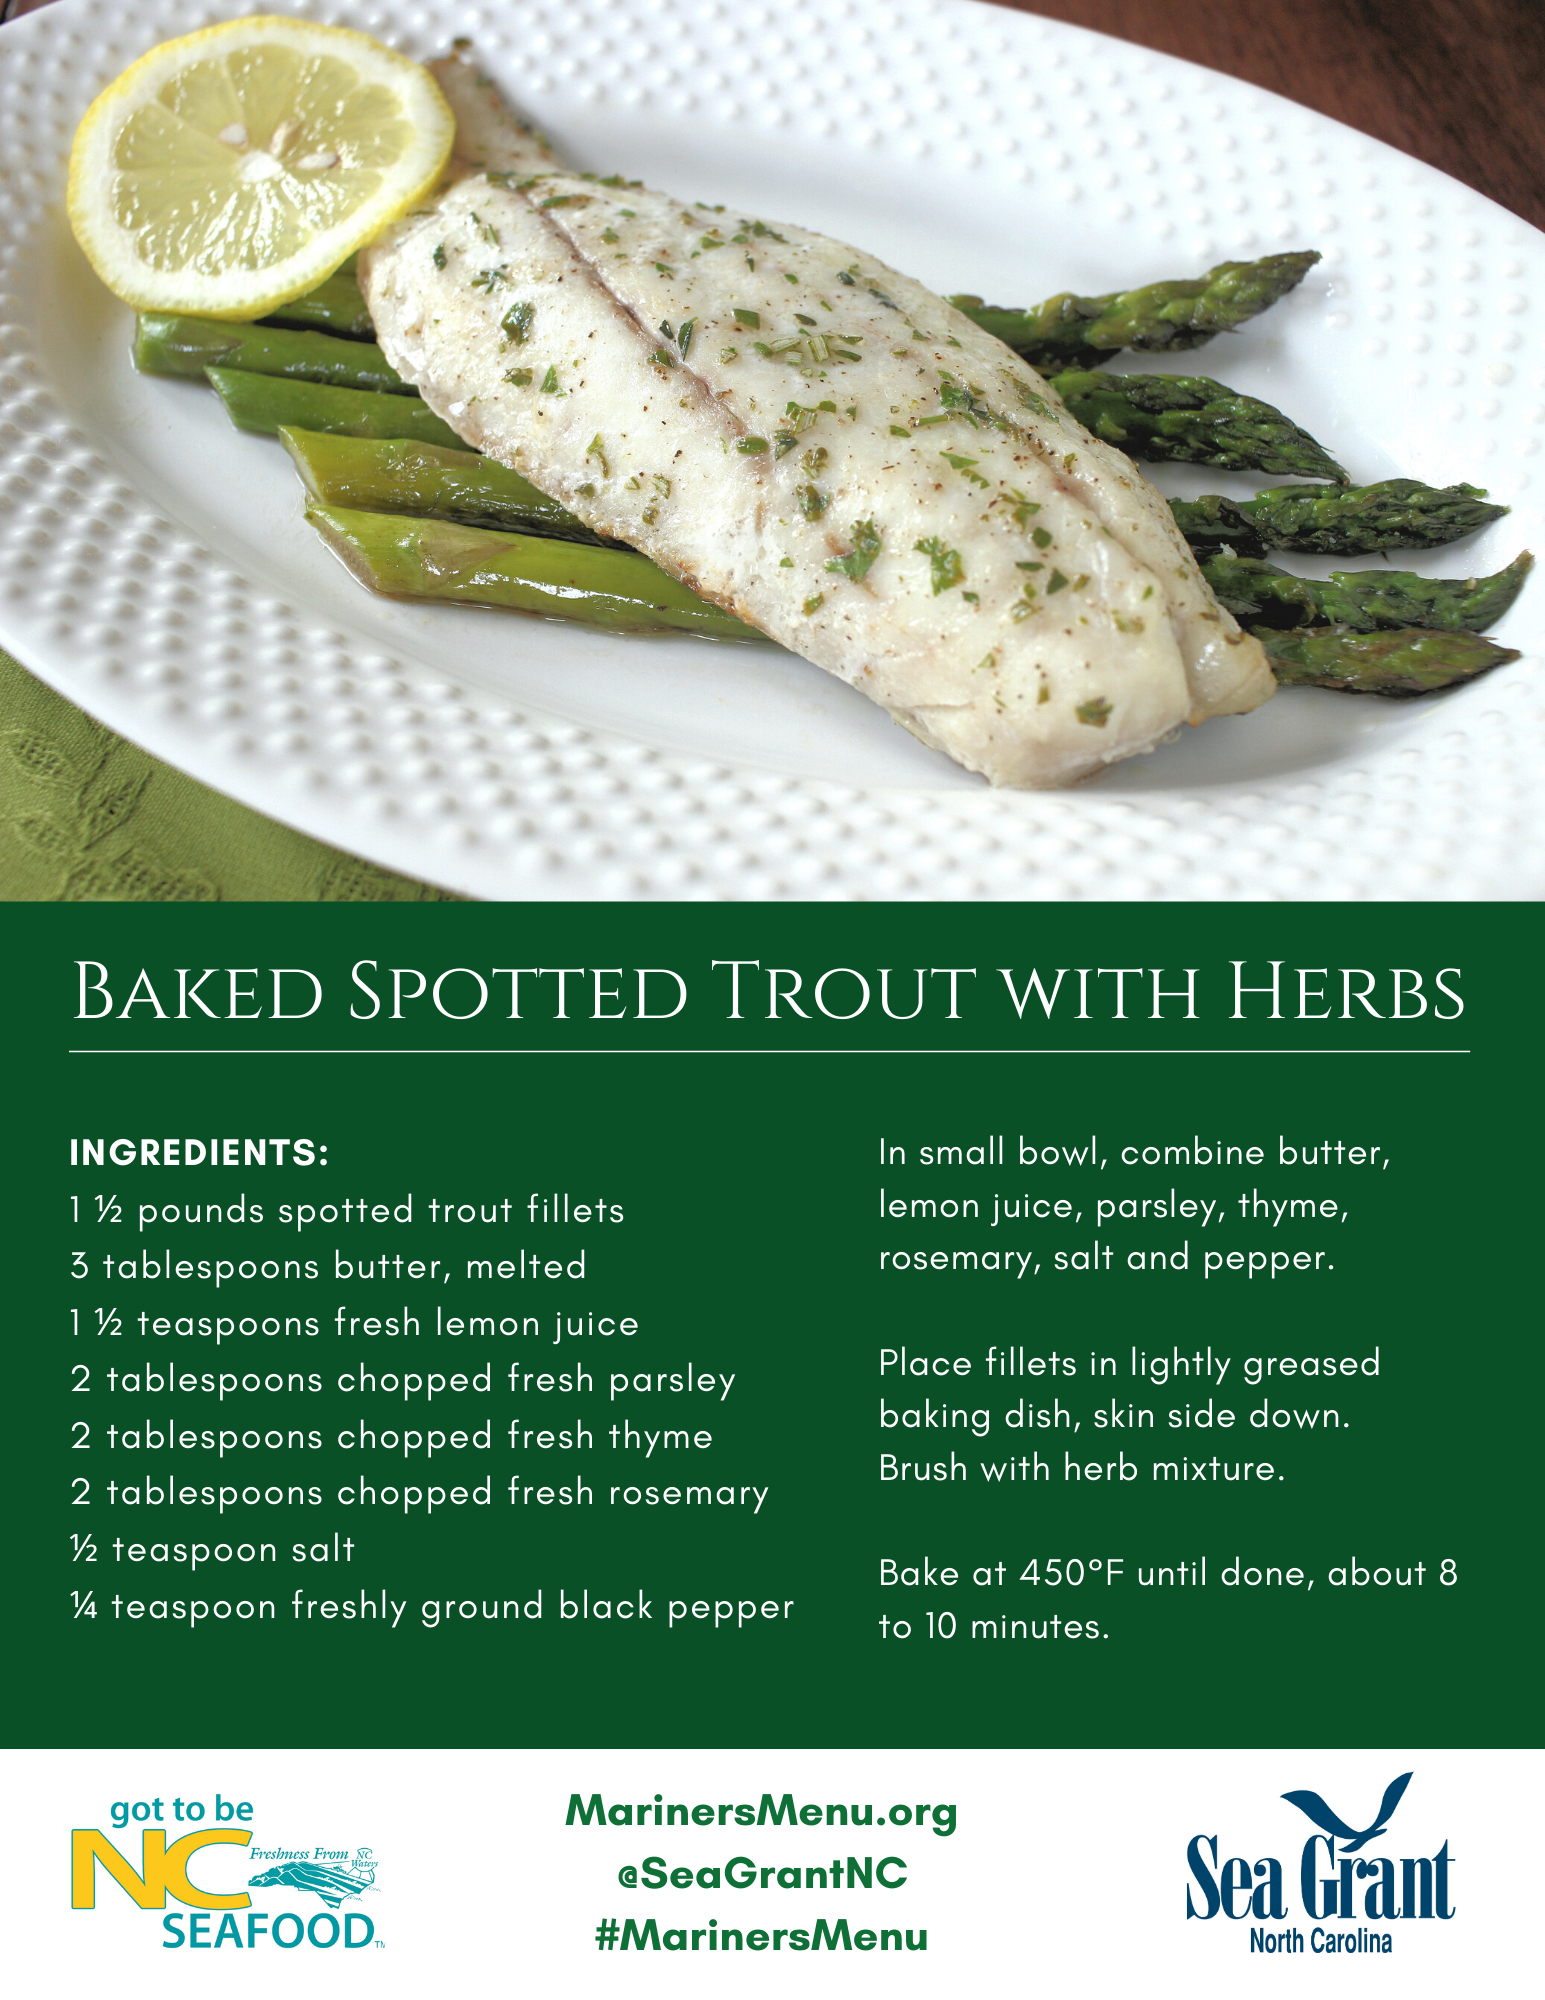 Baked Spotted Trout with Herbs recipe